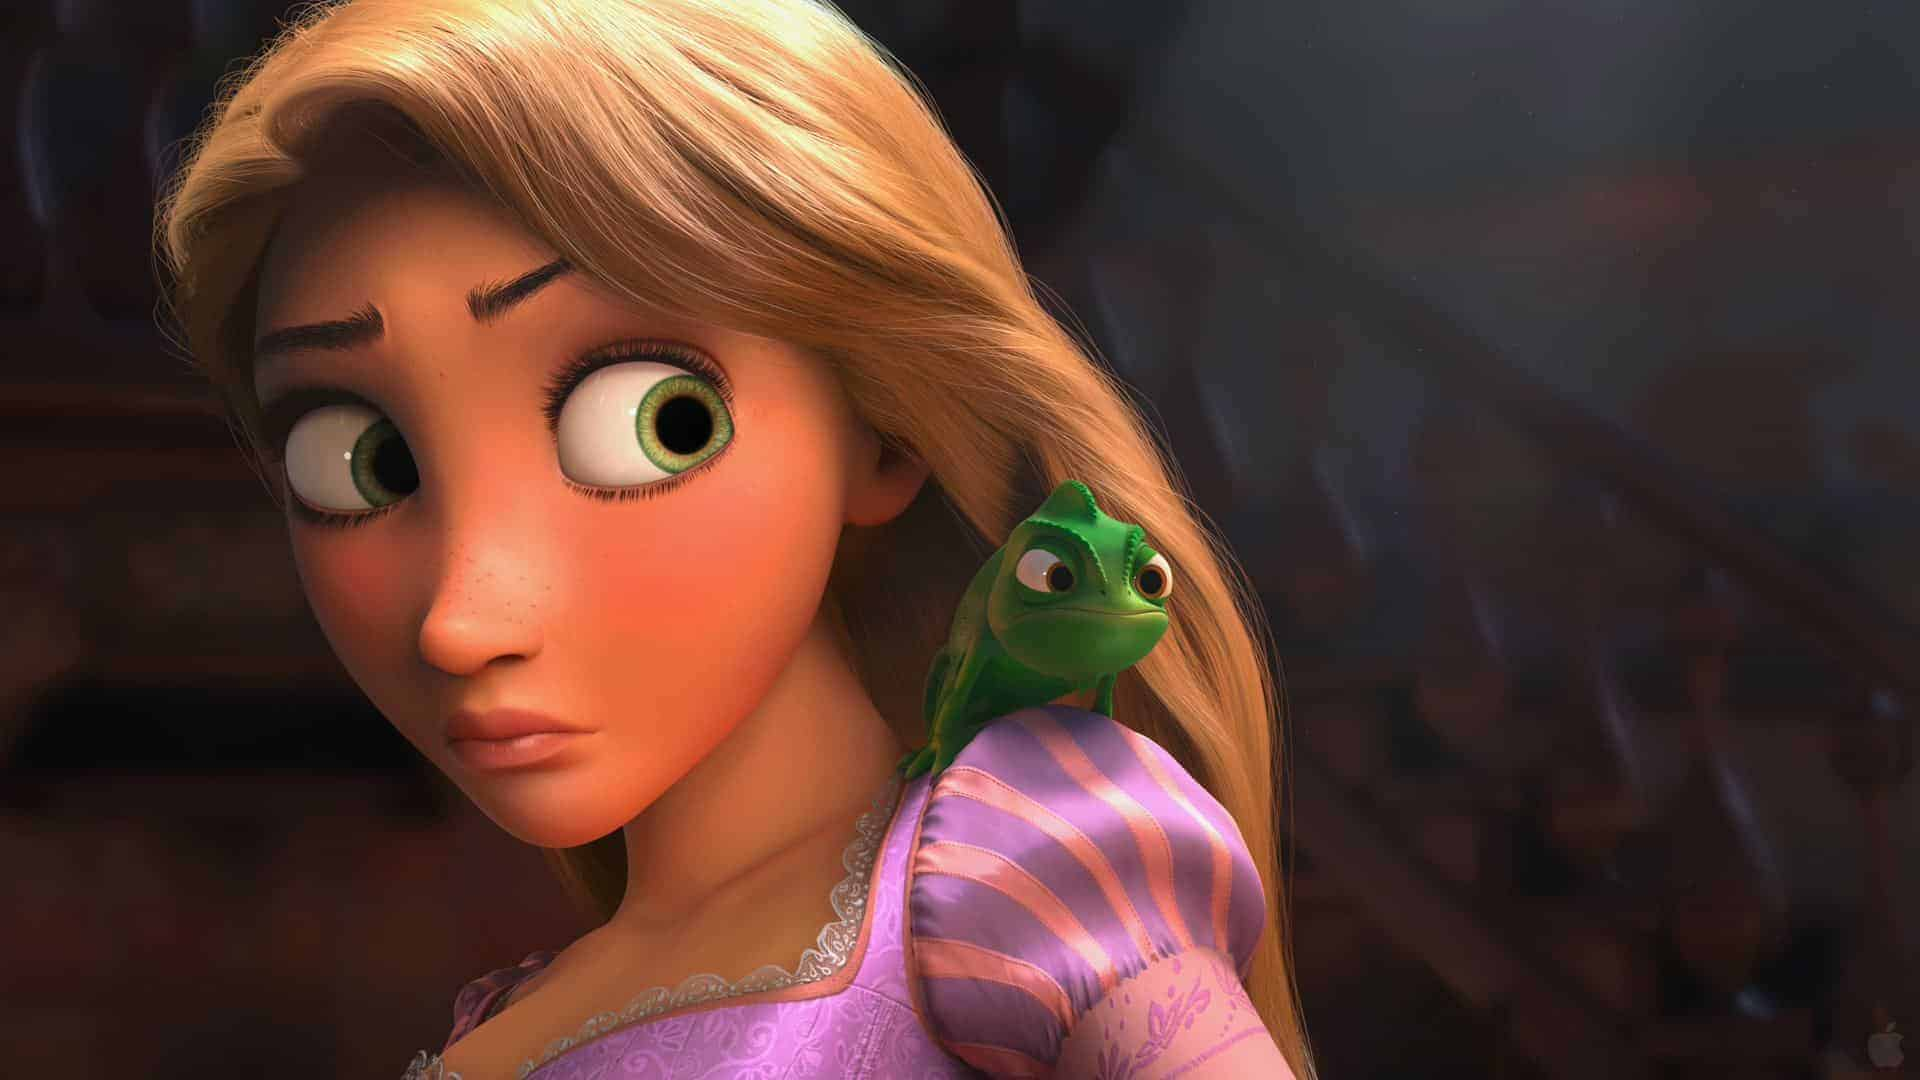 Pascal from Tangled